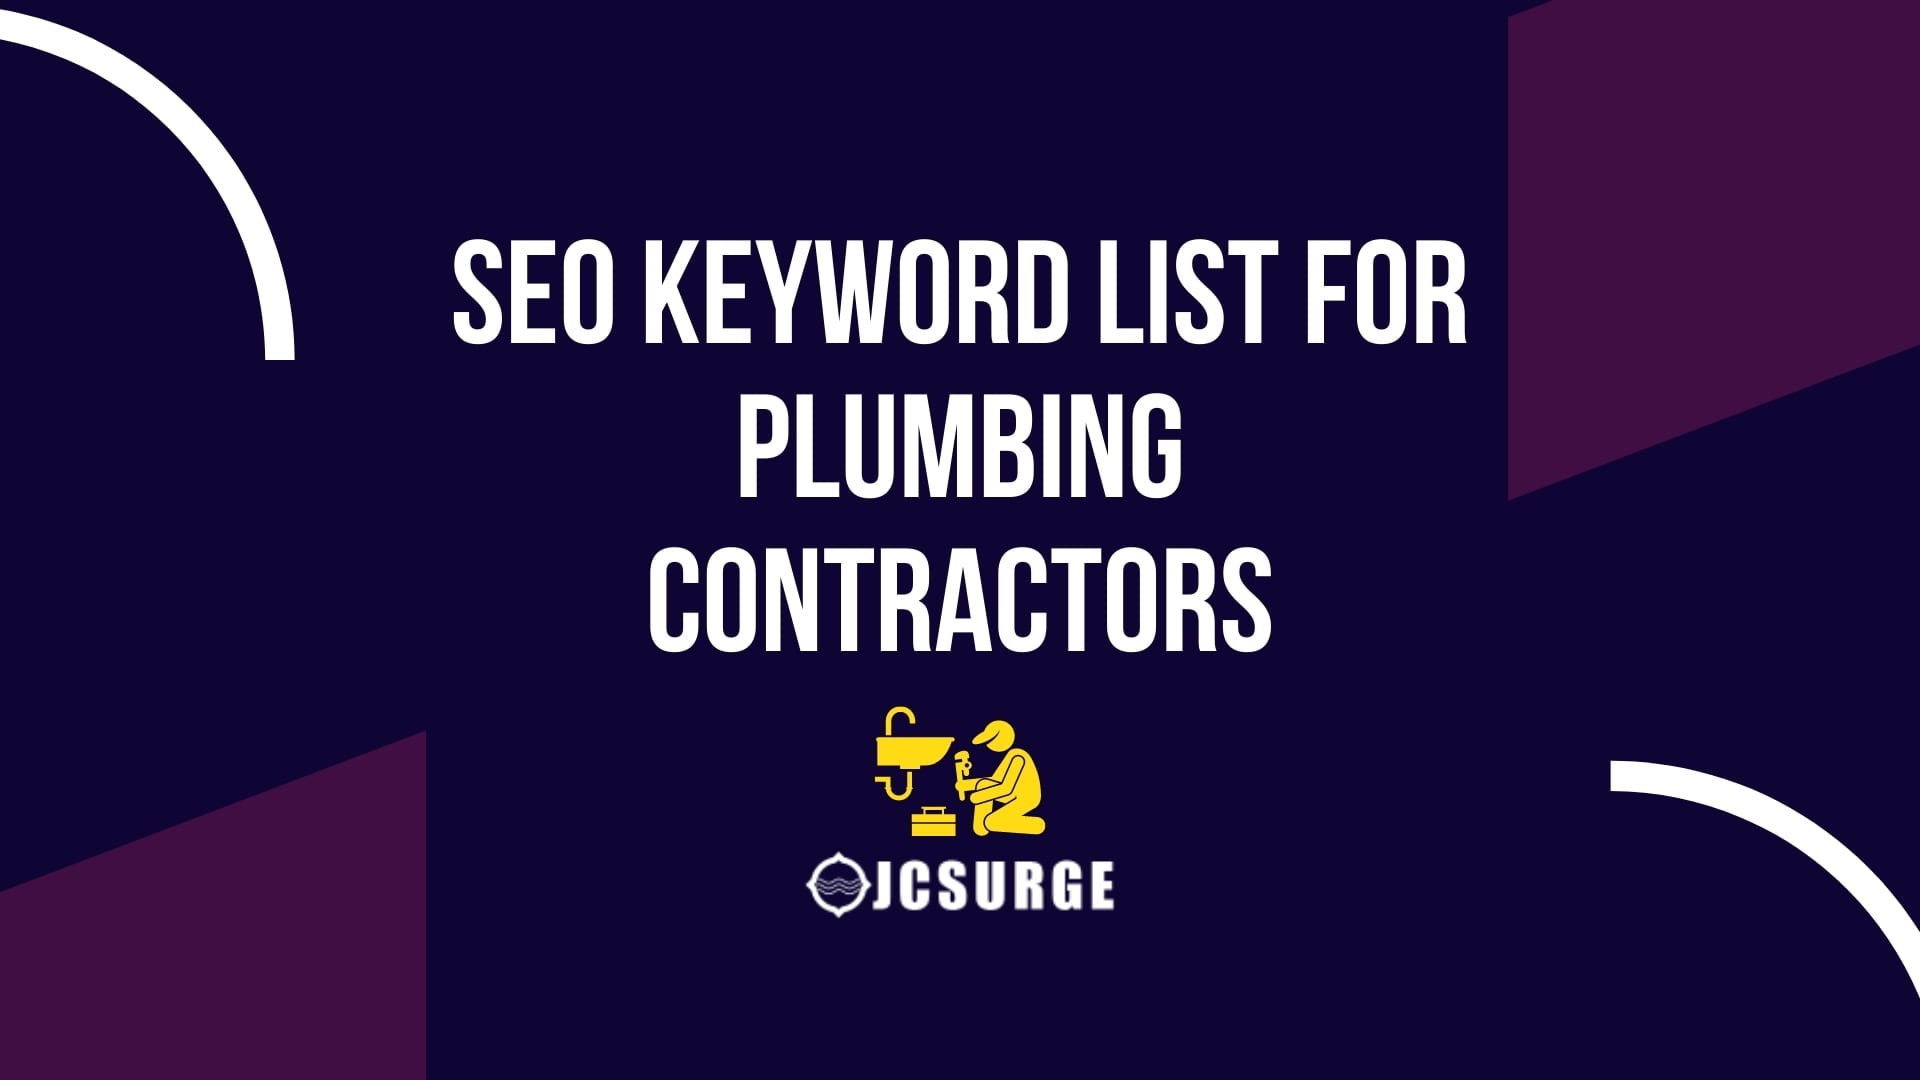 205 Keywords Plumbing Contractors Should Use on Their Website